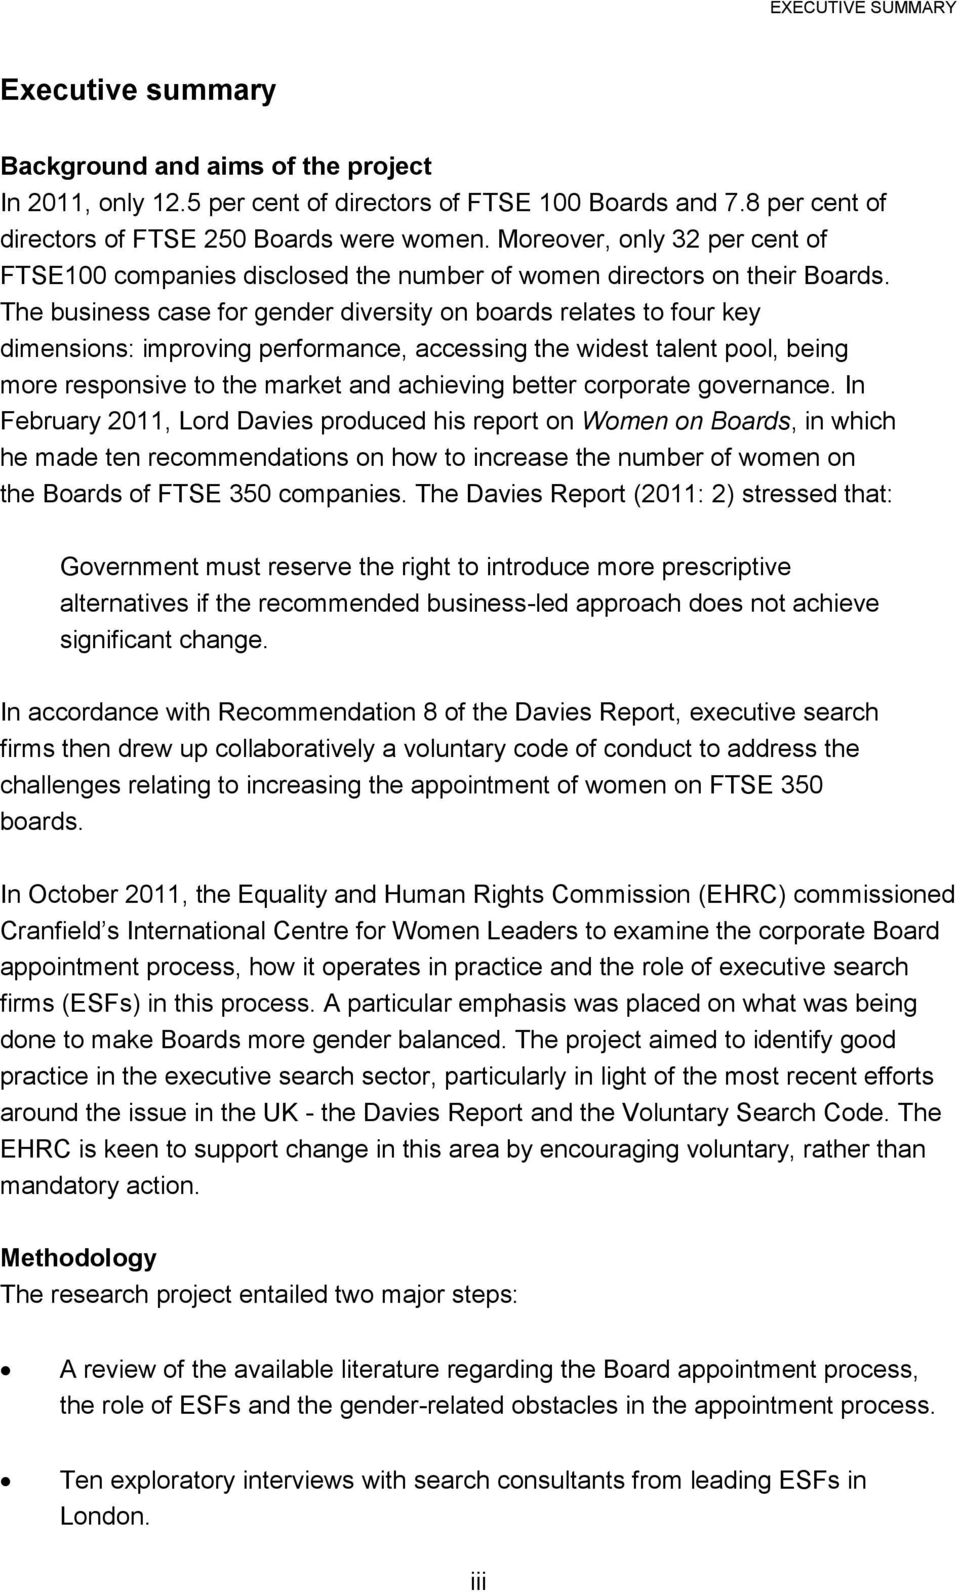 The business case for gender diversity on boards relates to four key dimensions: improving performance, accessing the widest talent pool, being more responsive to the market and achieving better